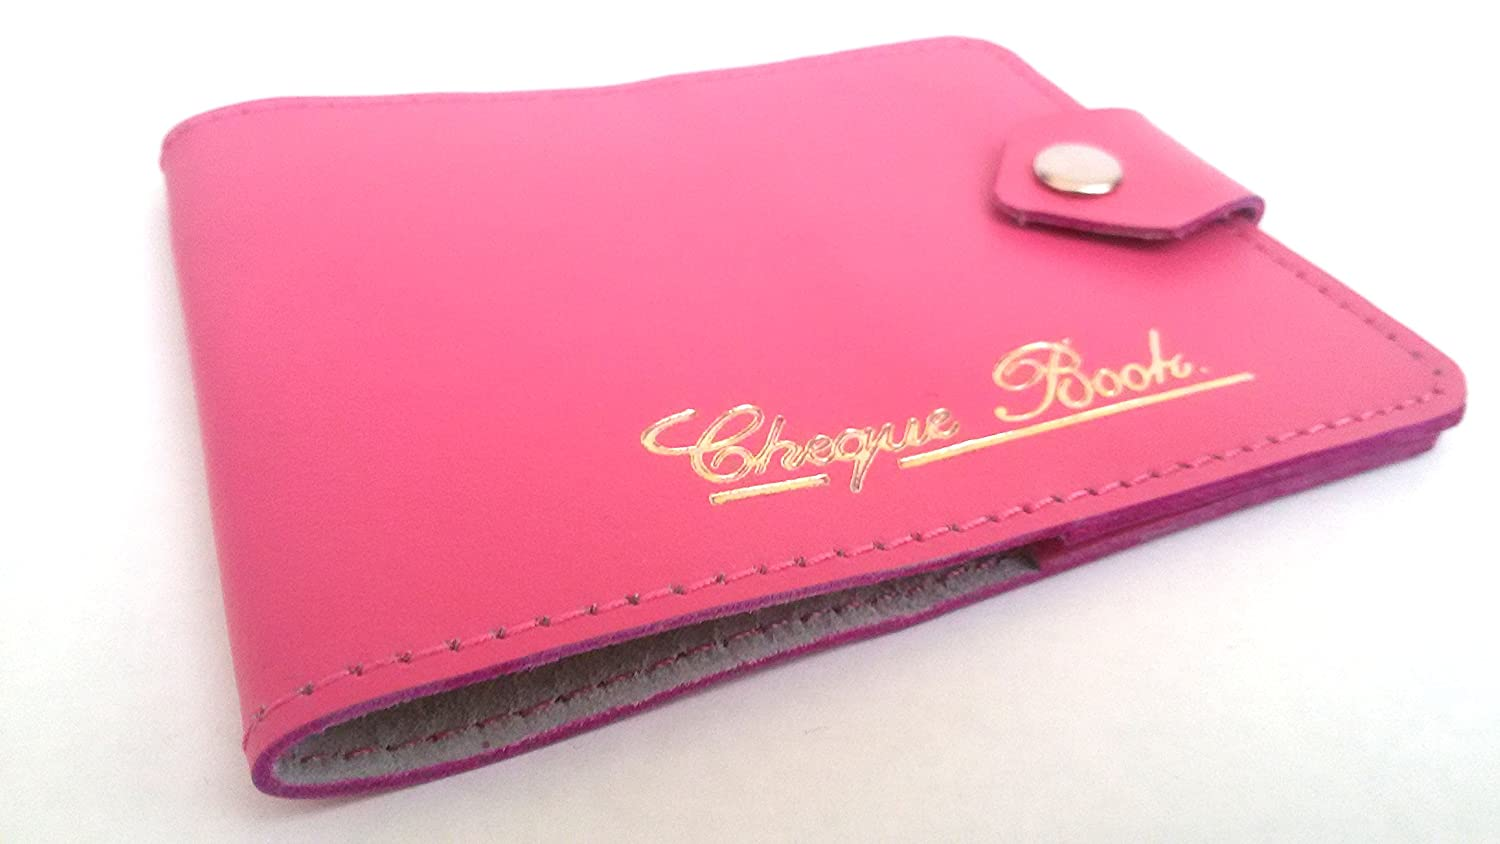 AKSHIDE Pink Bonded Leather Style Cheque Book Holder /Leather Style Cheque Book Cover